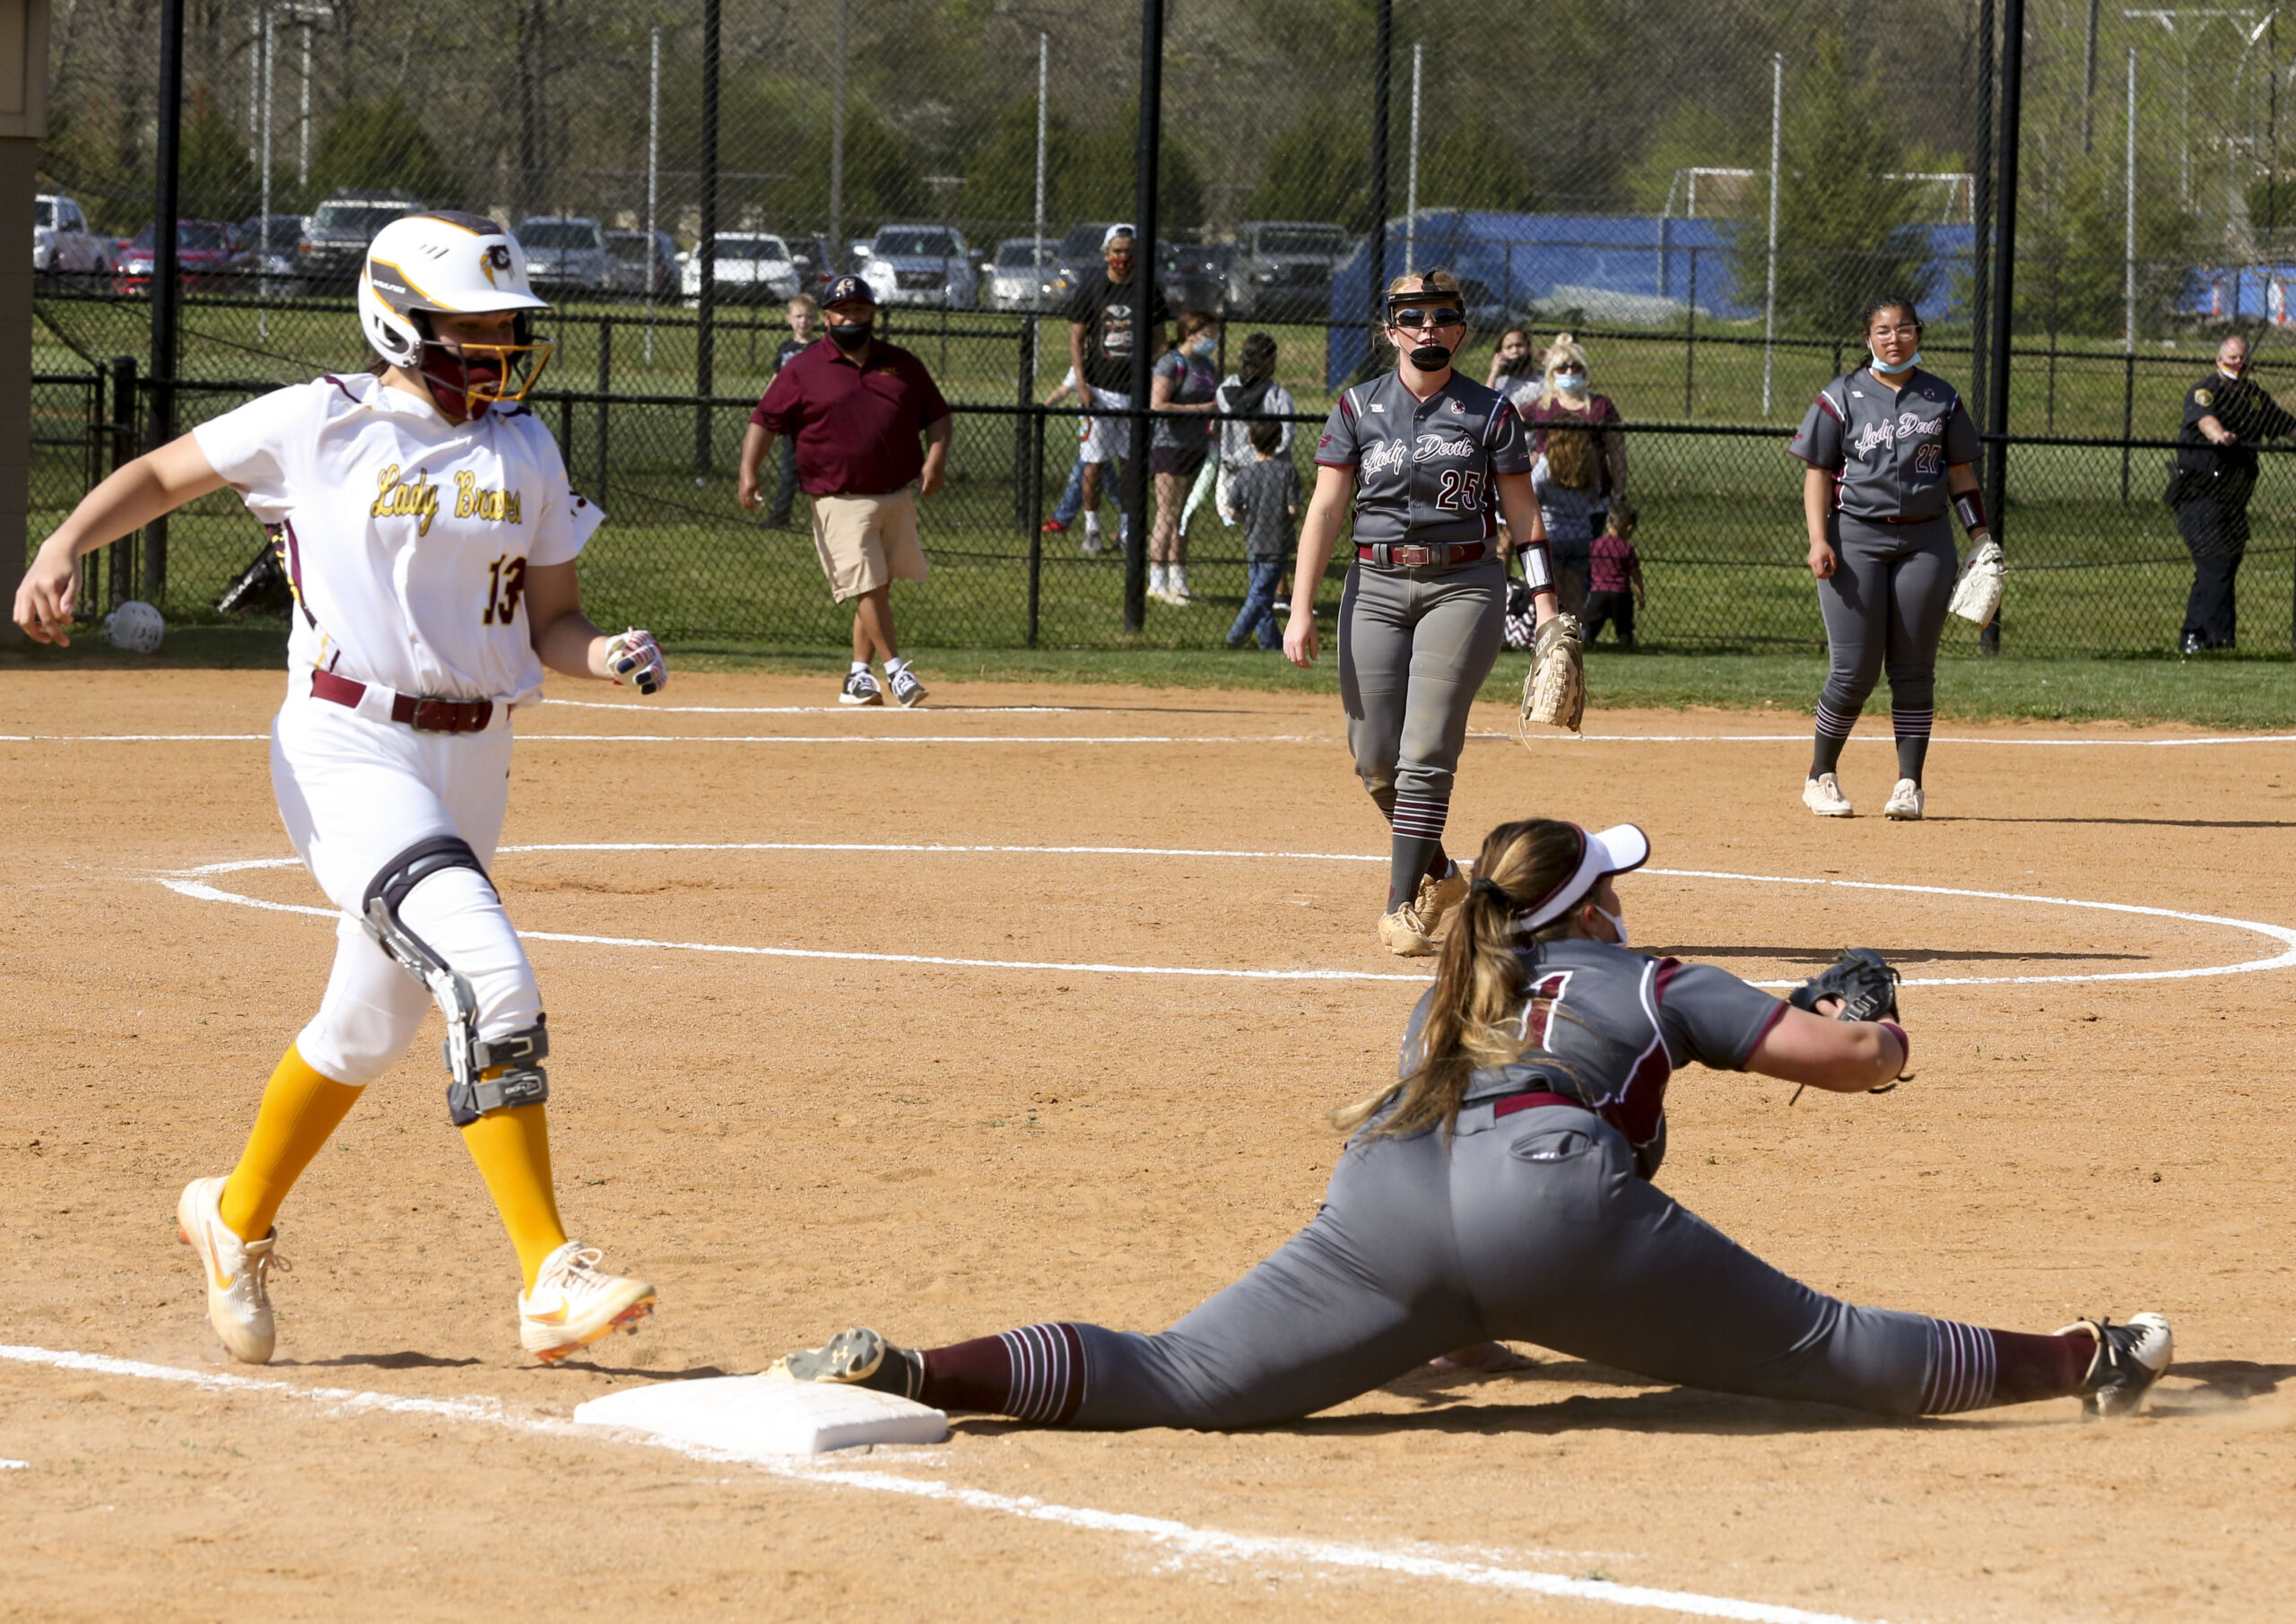 Lady Devils Come From Behind Win in Extra Innings